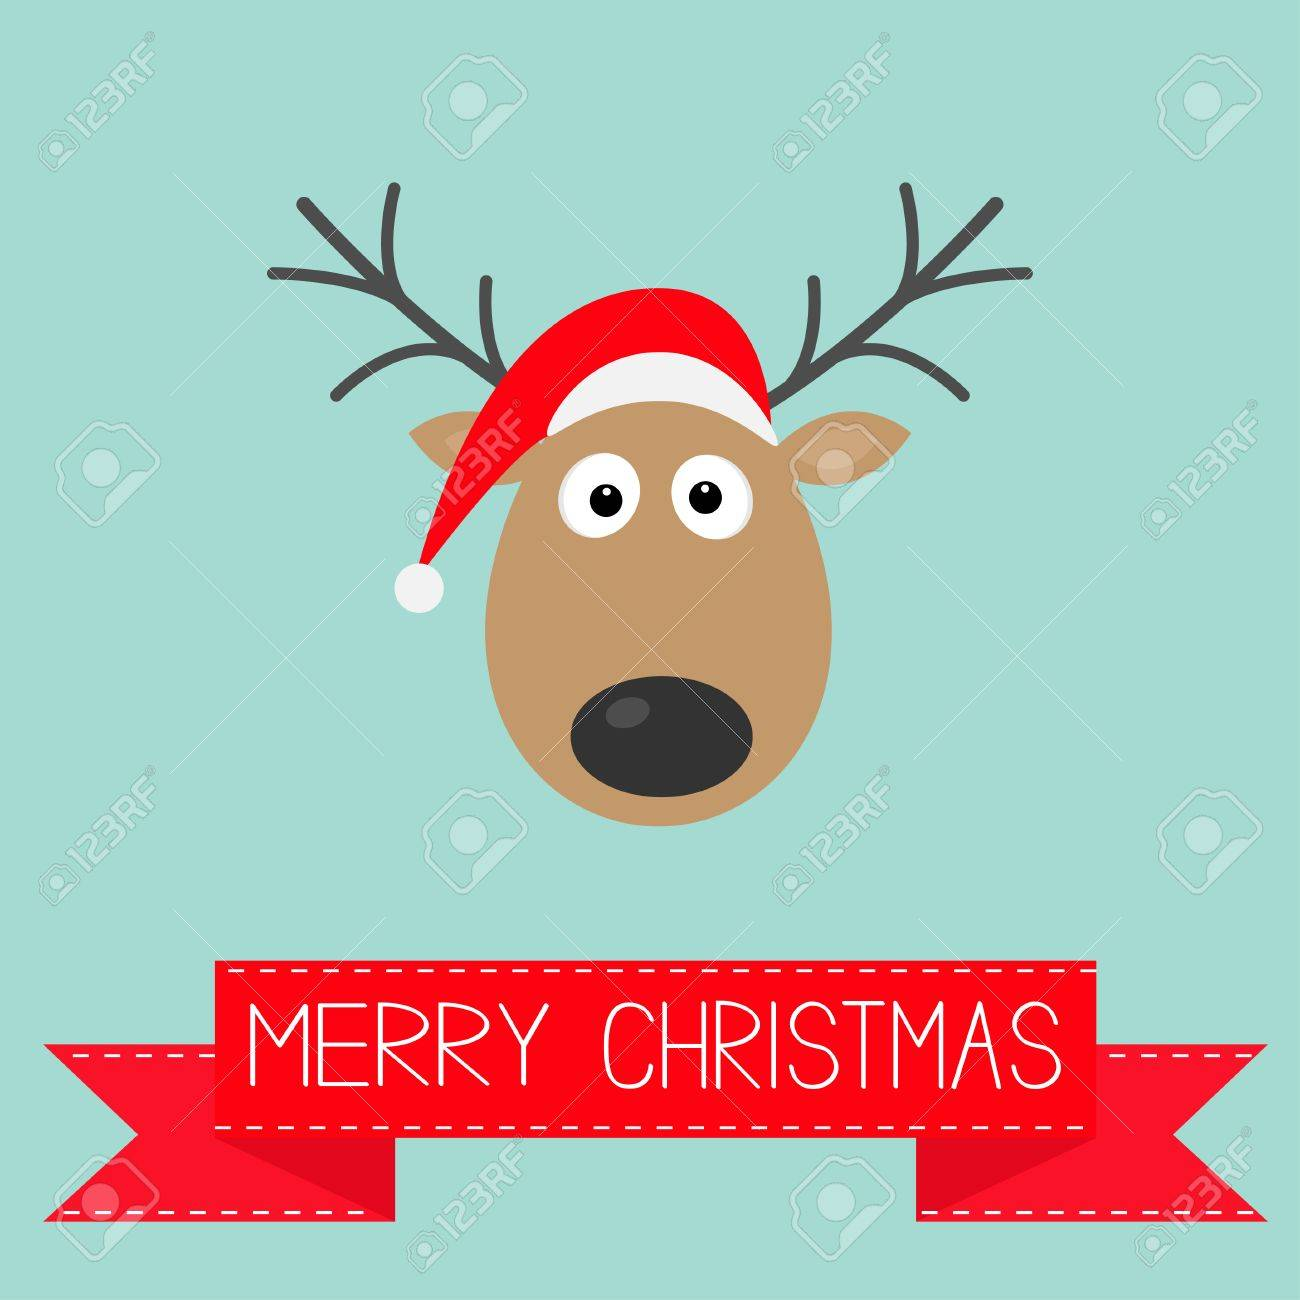 Cute Cartoon Deer With Horns And Red Santa Claus Hat Merry Christmas Background Card Flat Design